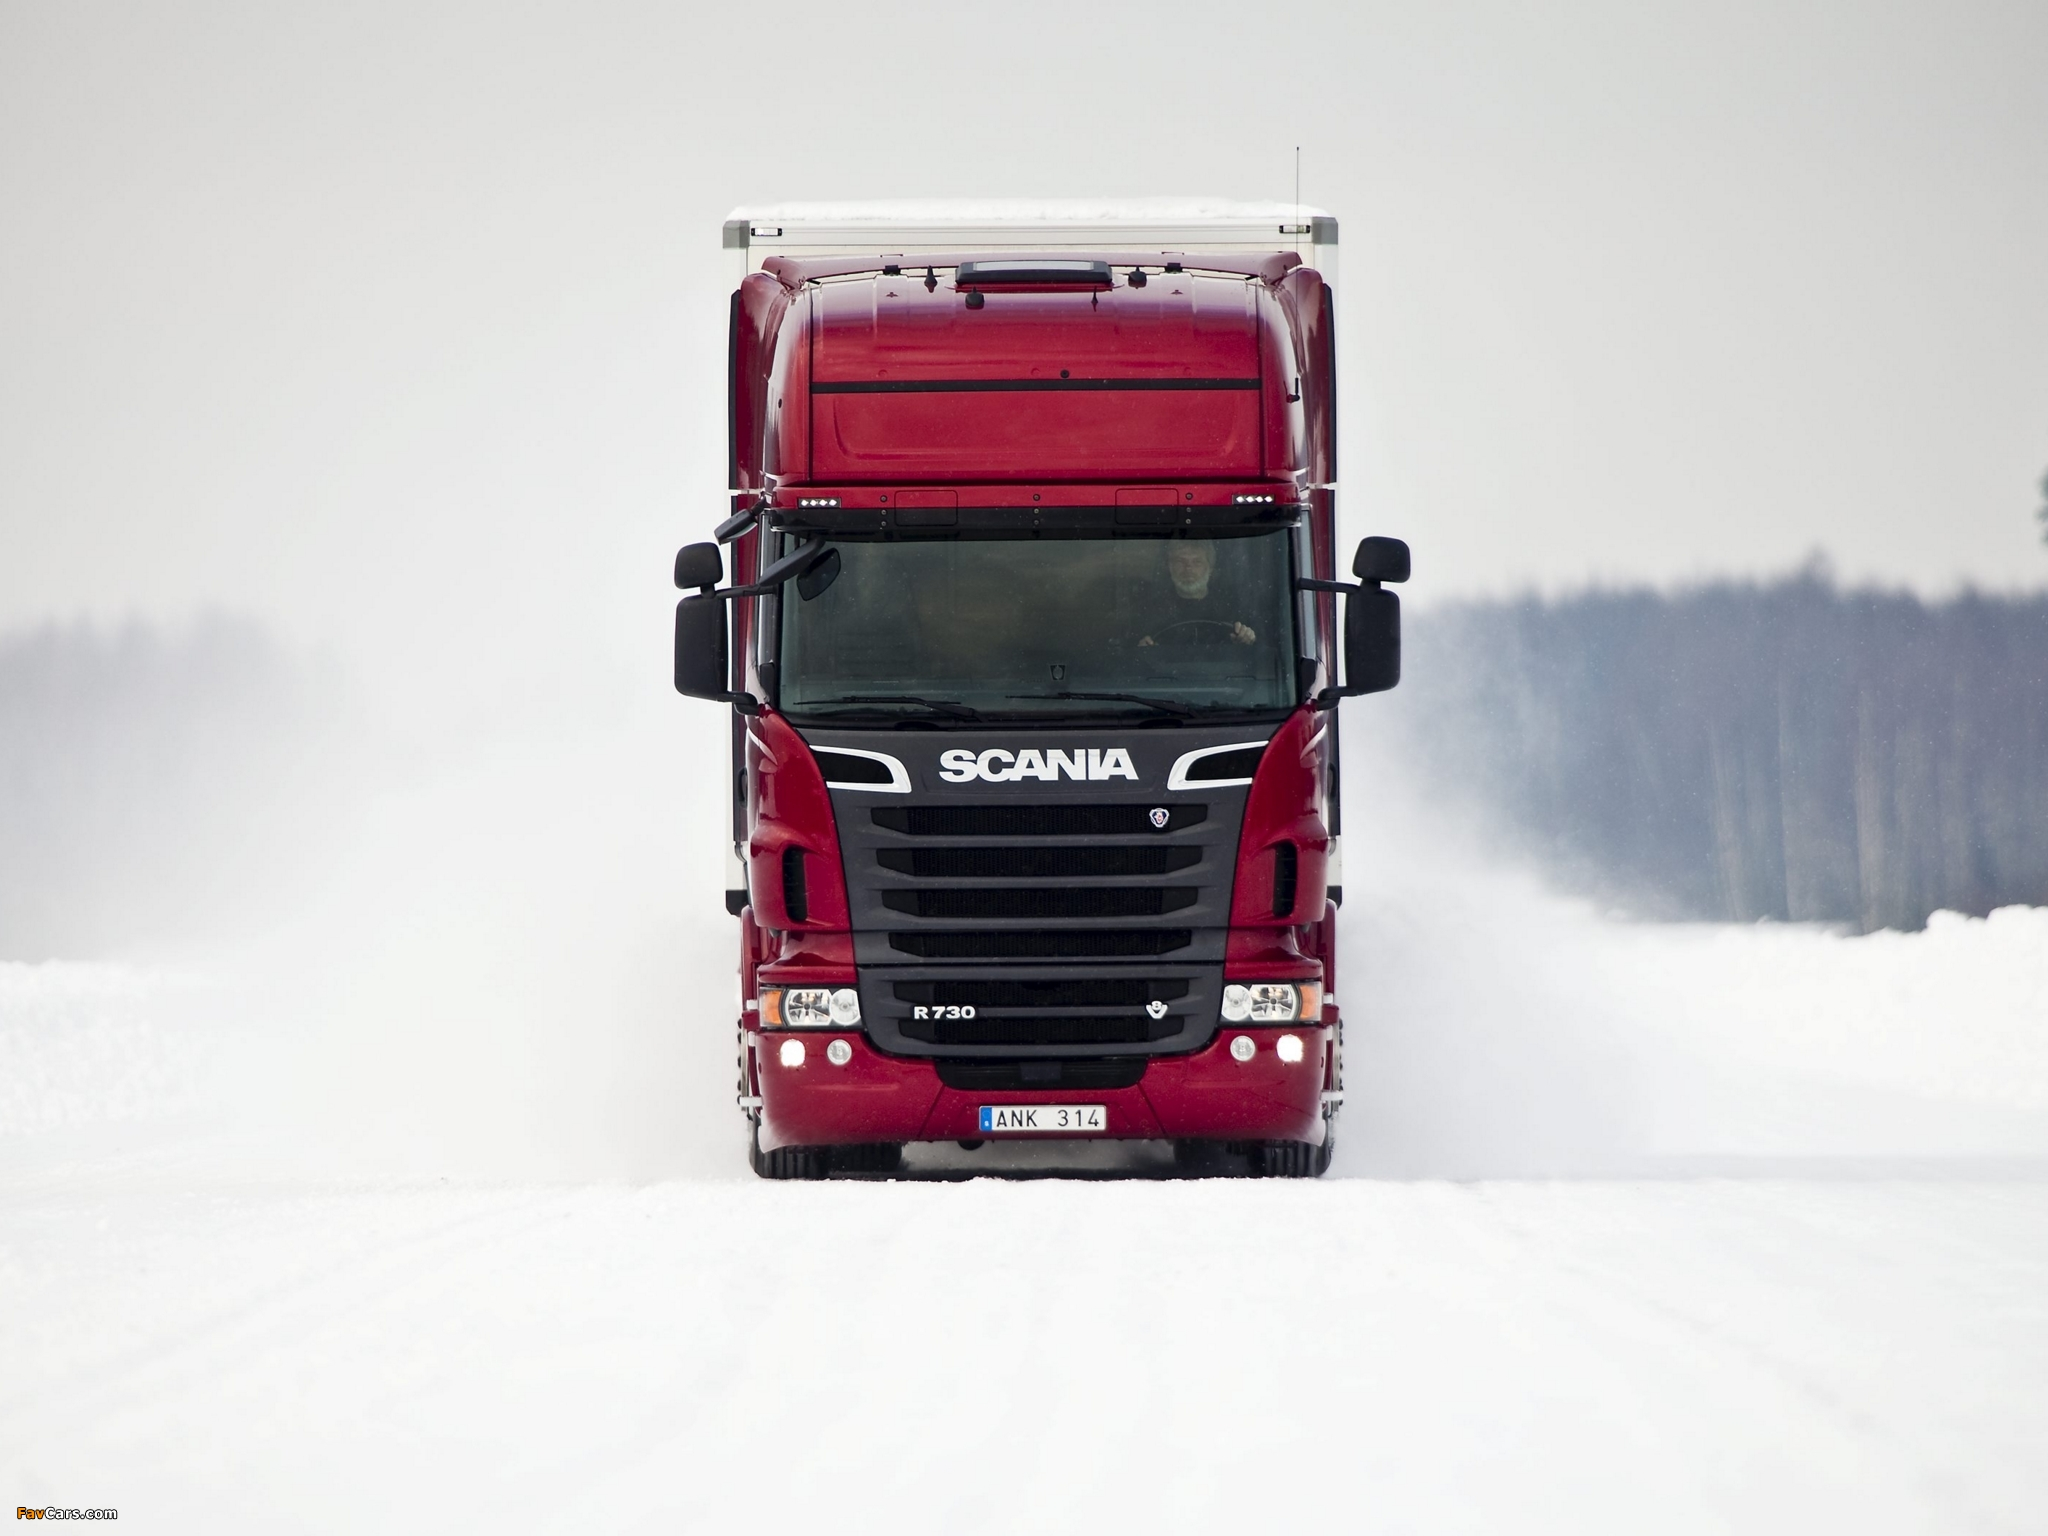 Red Scania Truck On Ice Road Wallpaper